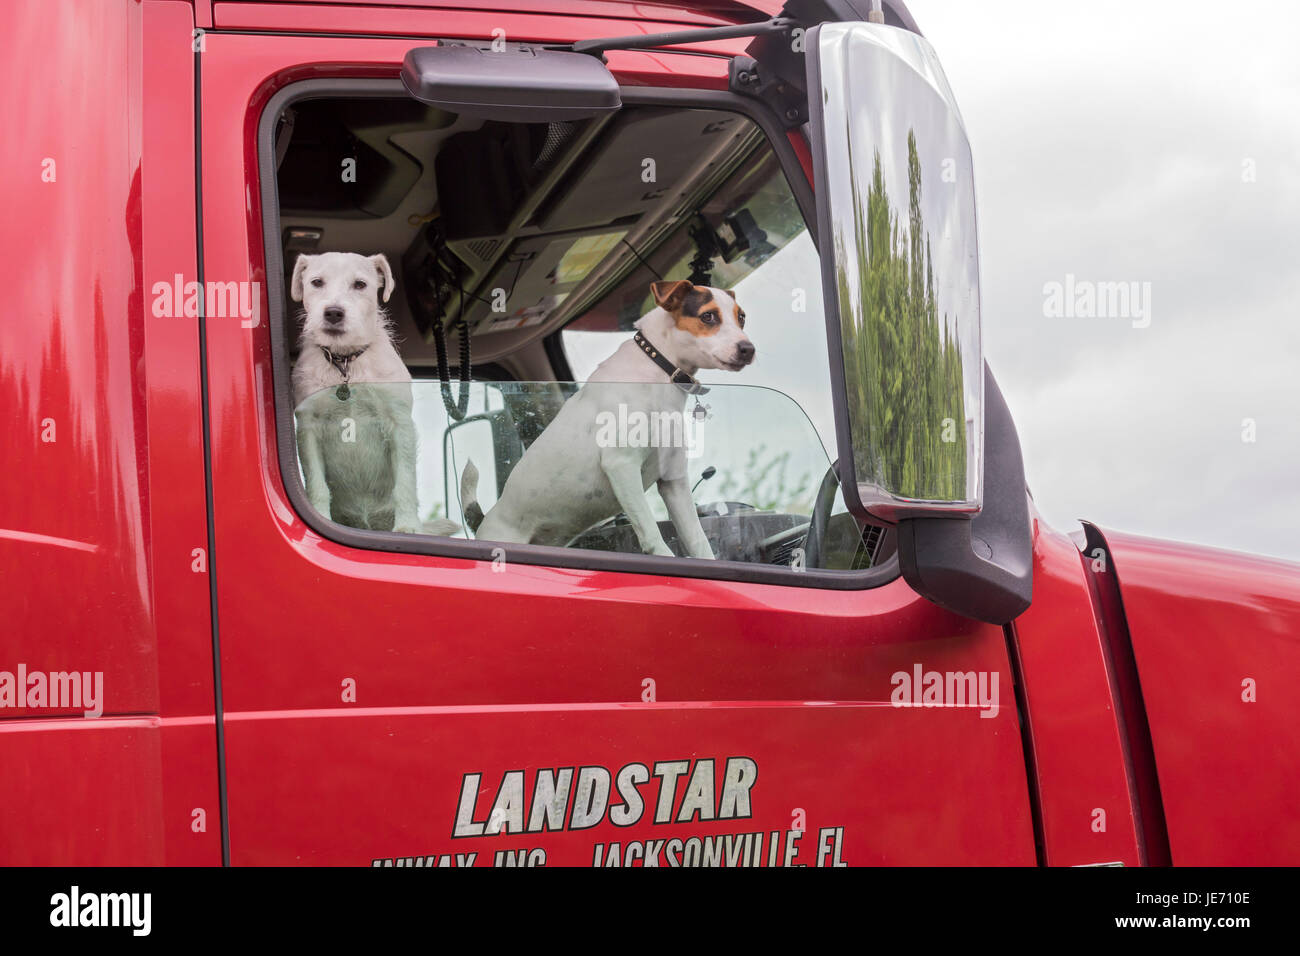 Mercer, Pennsylvania - Two dogs riding in a long-haul truck on Interstate 80 in western Pennsylvania. - Stock Image